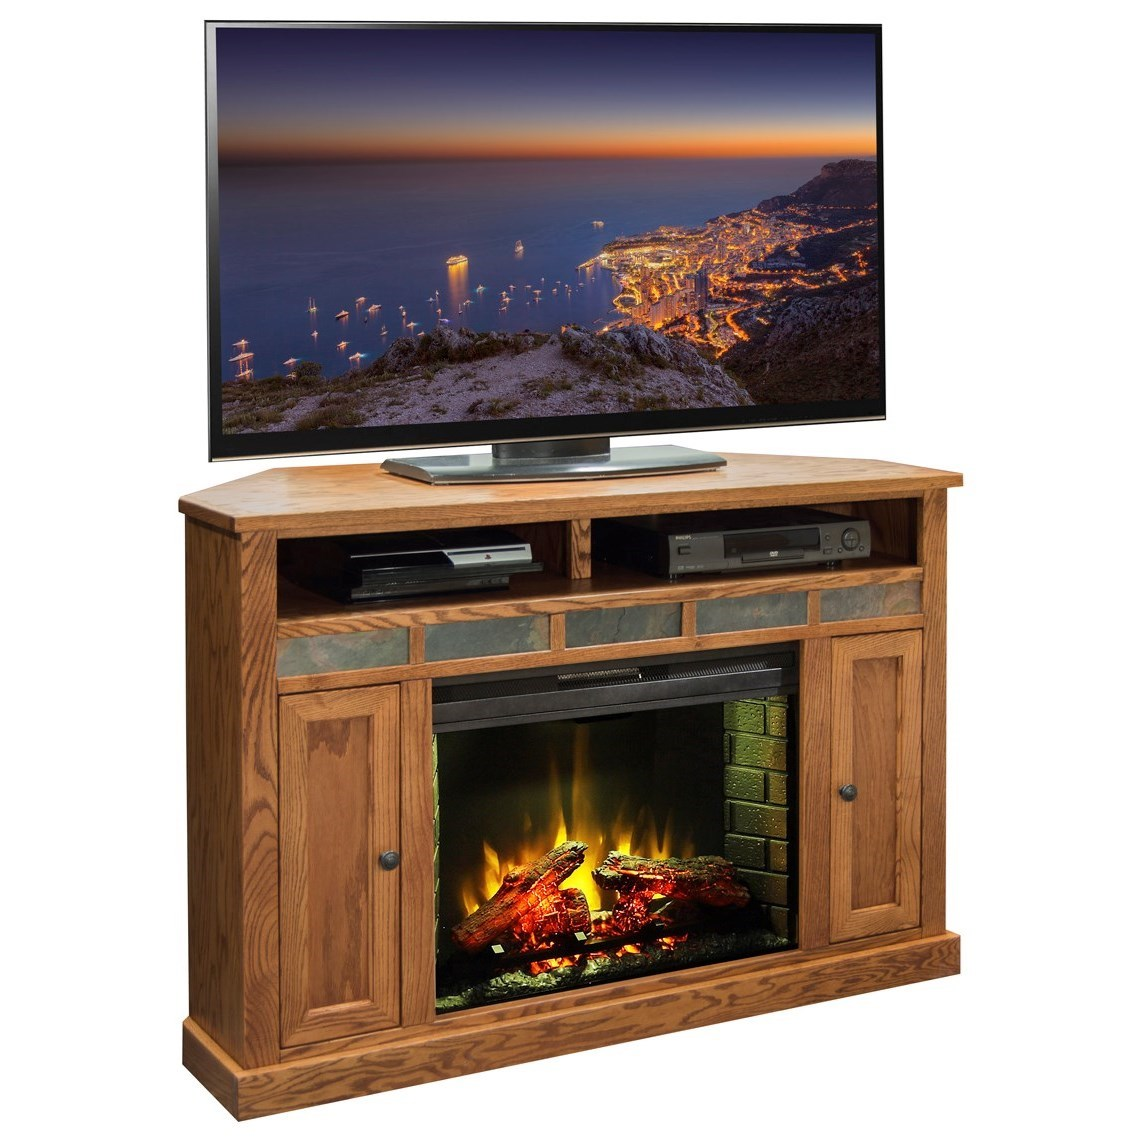 Brilliant Oak Creek Rustic 56 Corner Fireplace With Stone Tile Accents By Legends Furniture At Goffena Furniture Mattress Center Home Interior And Landscaping Ponolsignezvosmurscom